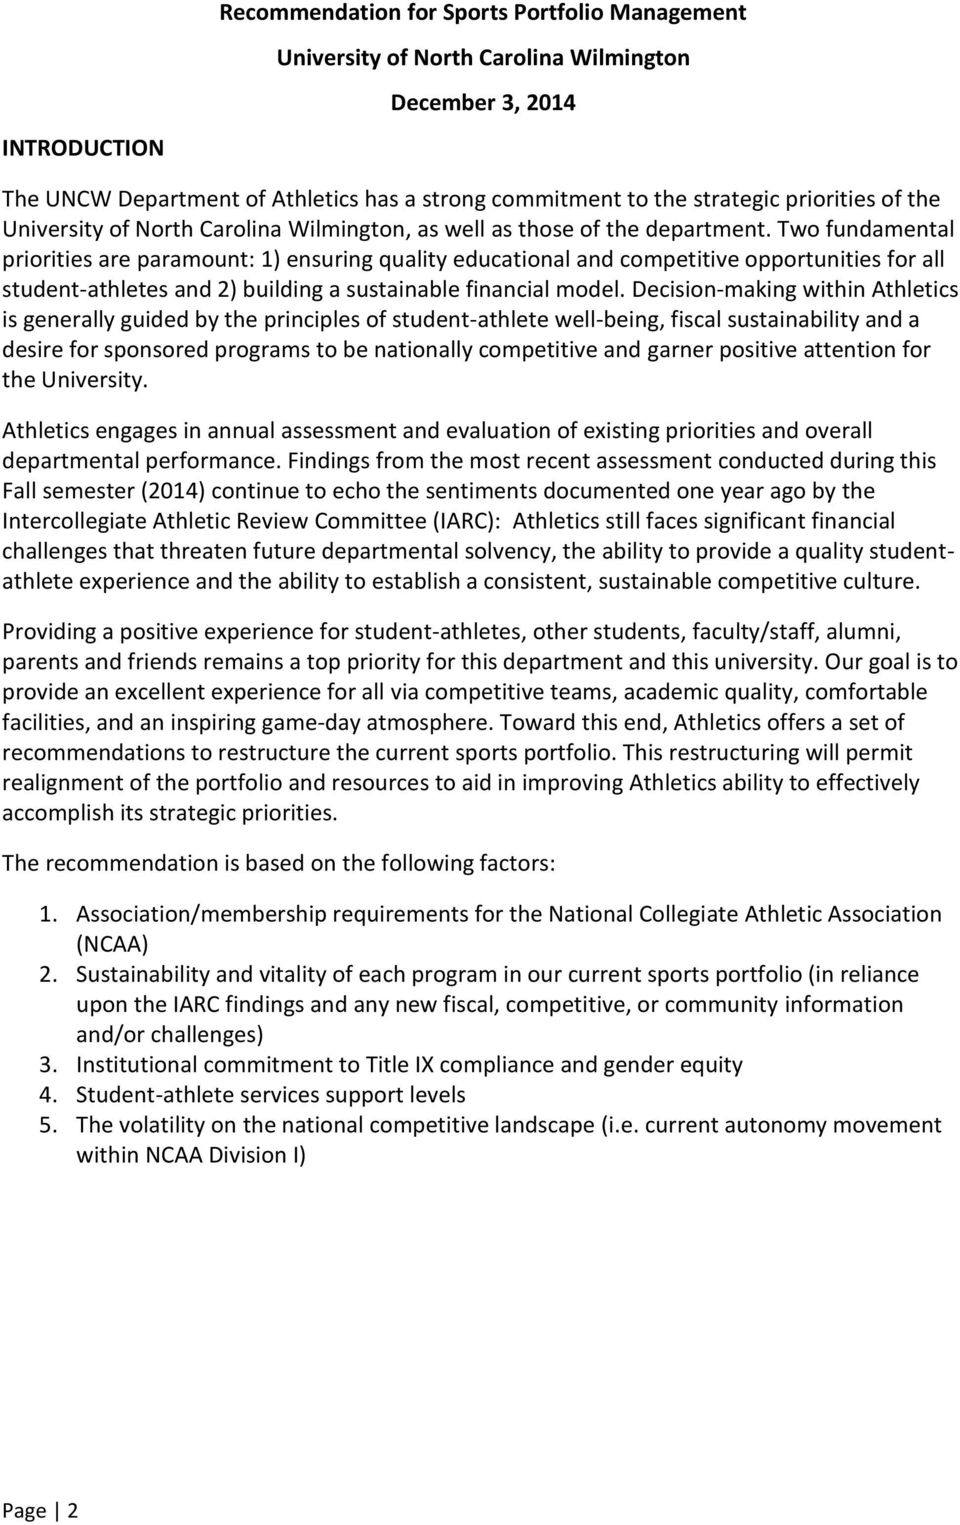 Two fundamental priorities are paramount: 1) ensuring quality educational and competitive opportunities for all student-athletes and 2) building a sustainable financial model.